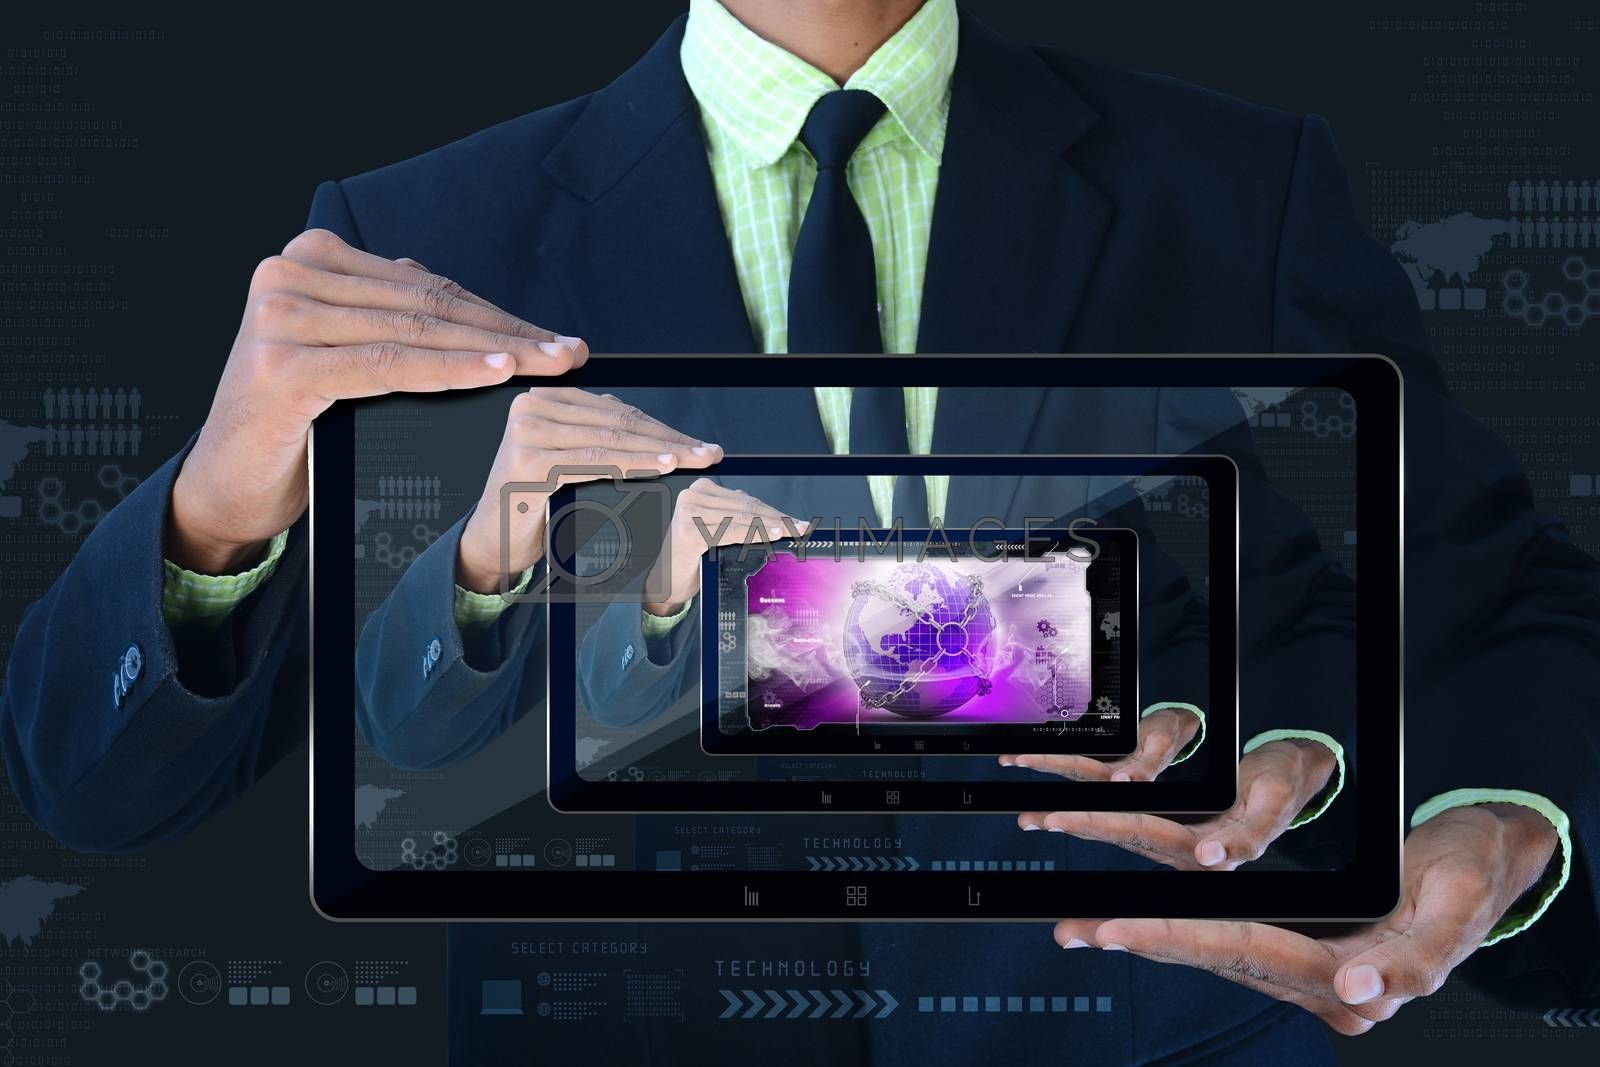 Smart hand showing  futuristic technology by cuteimage